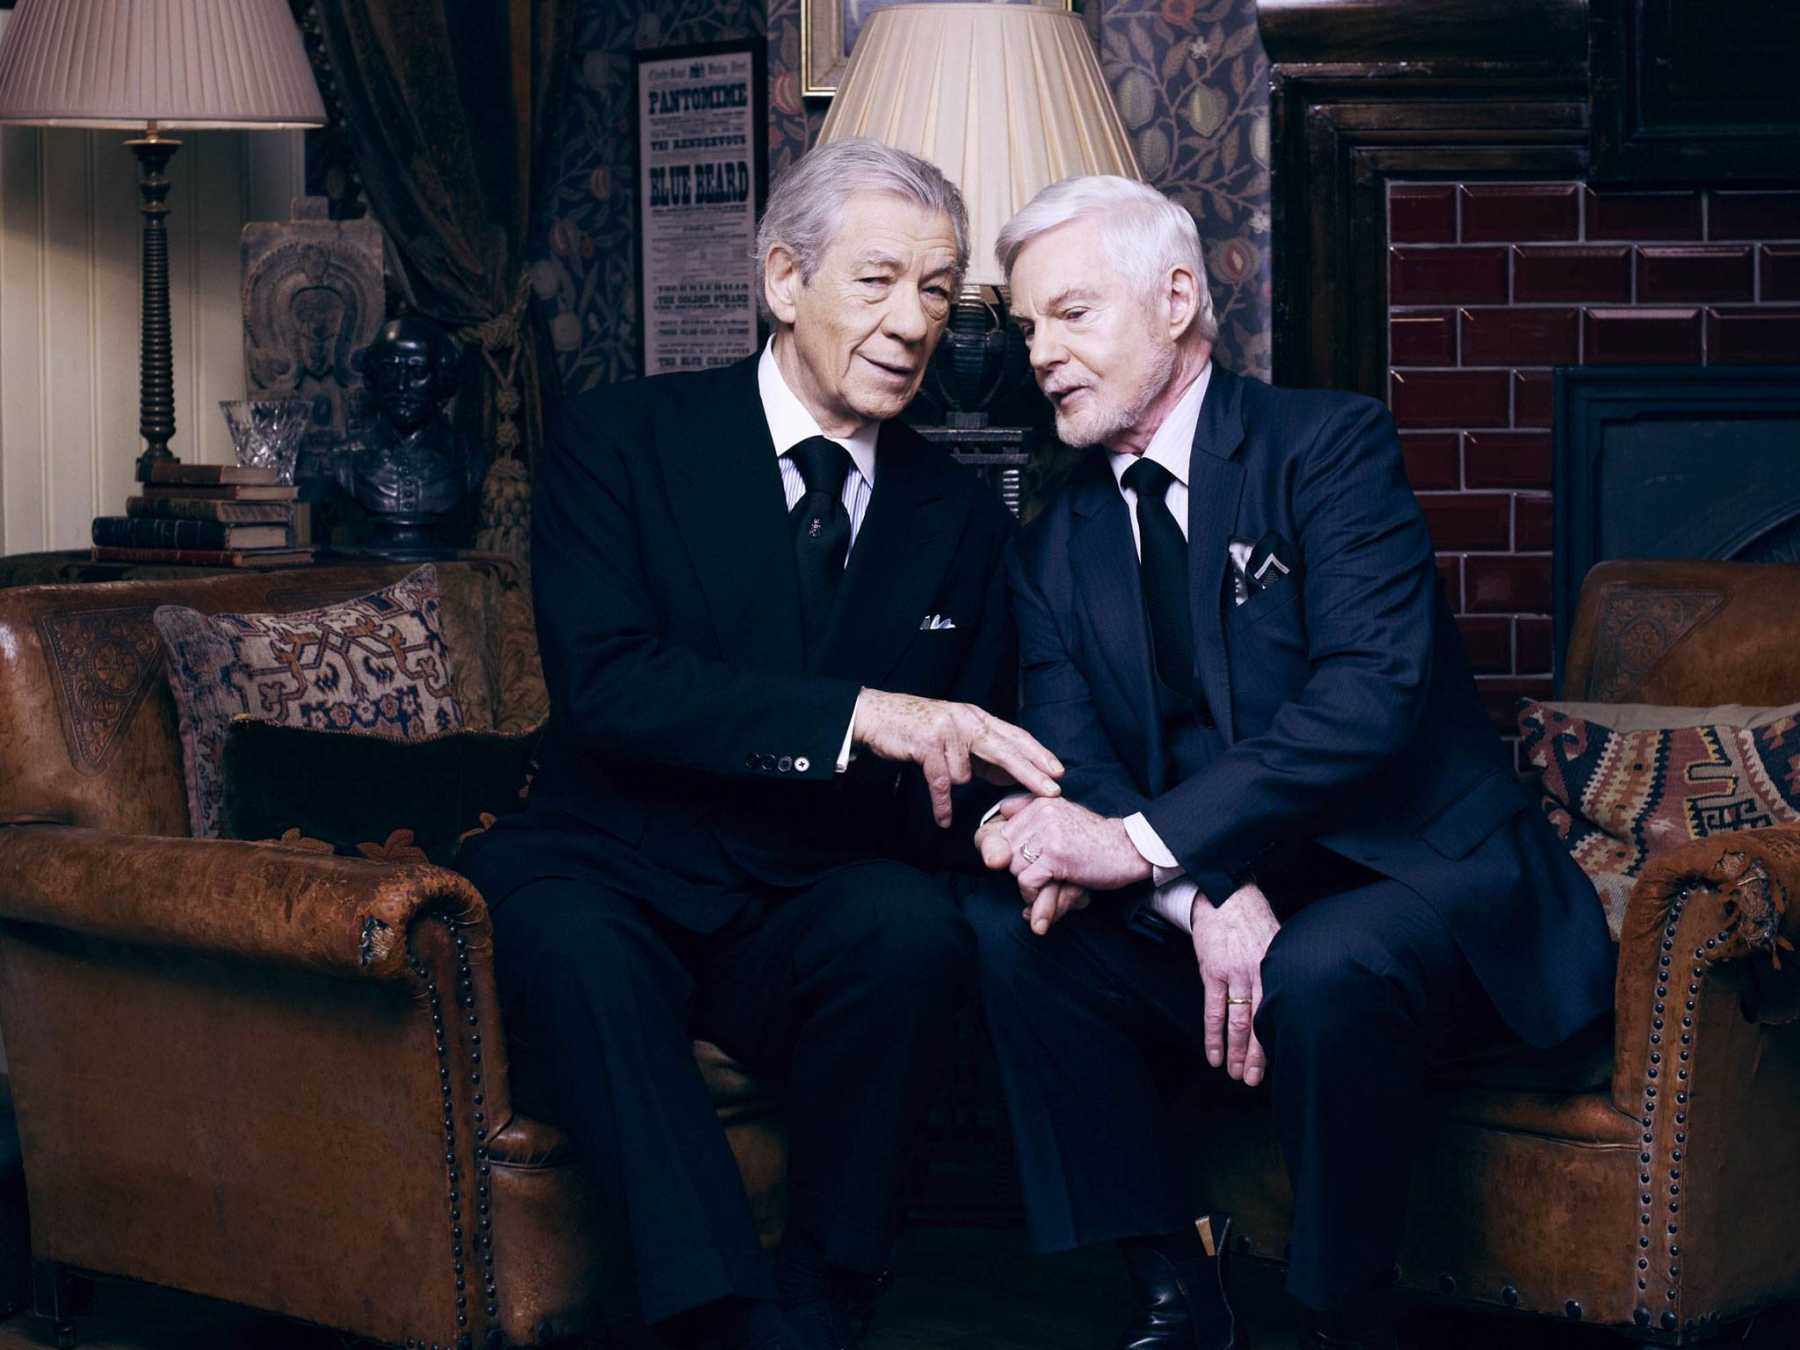 Ian Mckellen and Derek Jacobi's Vicious to Air on PBS in 2014